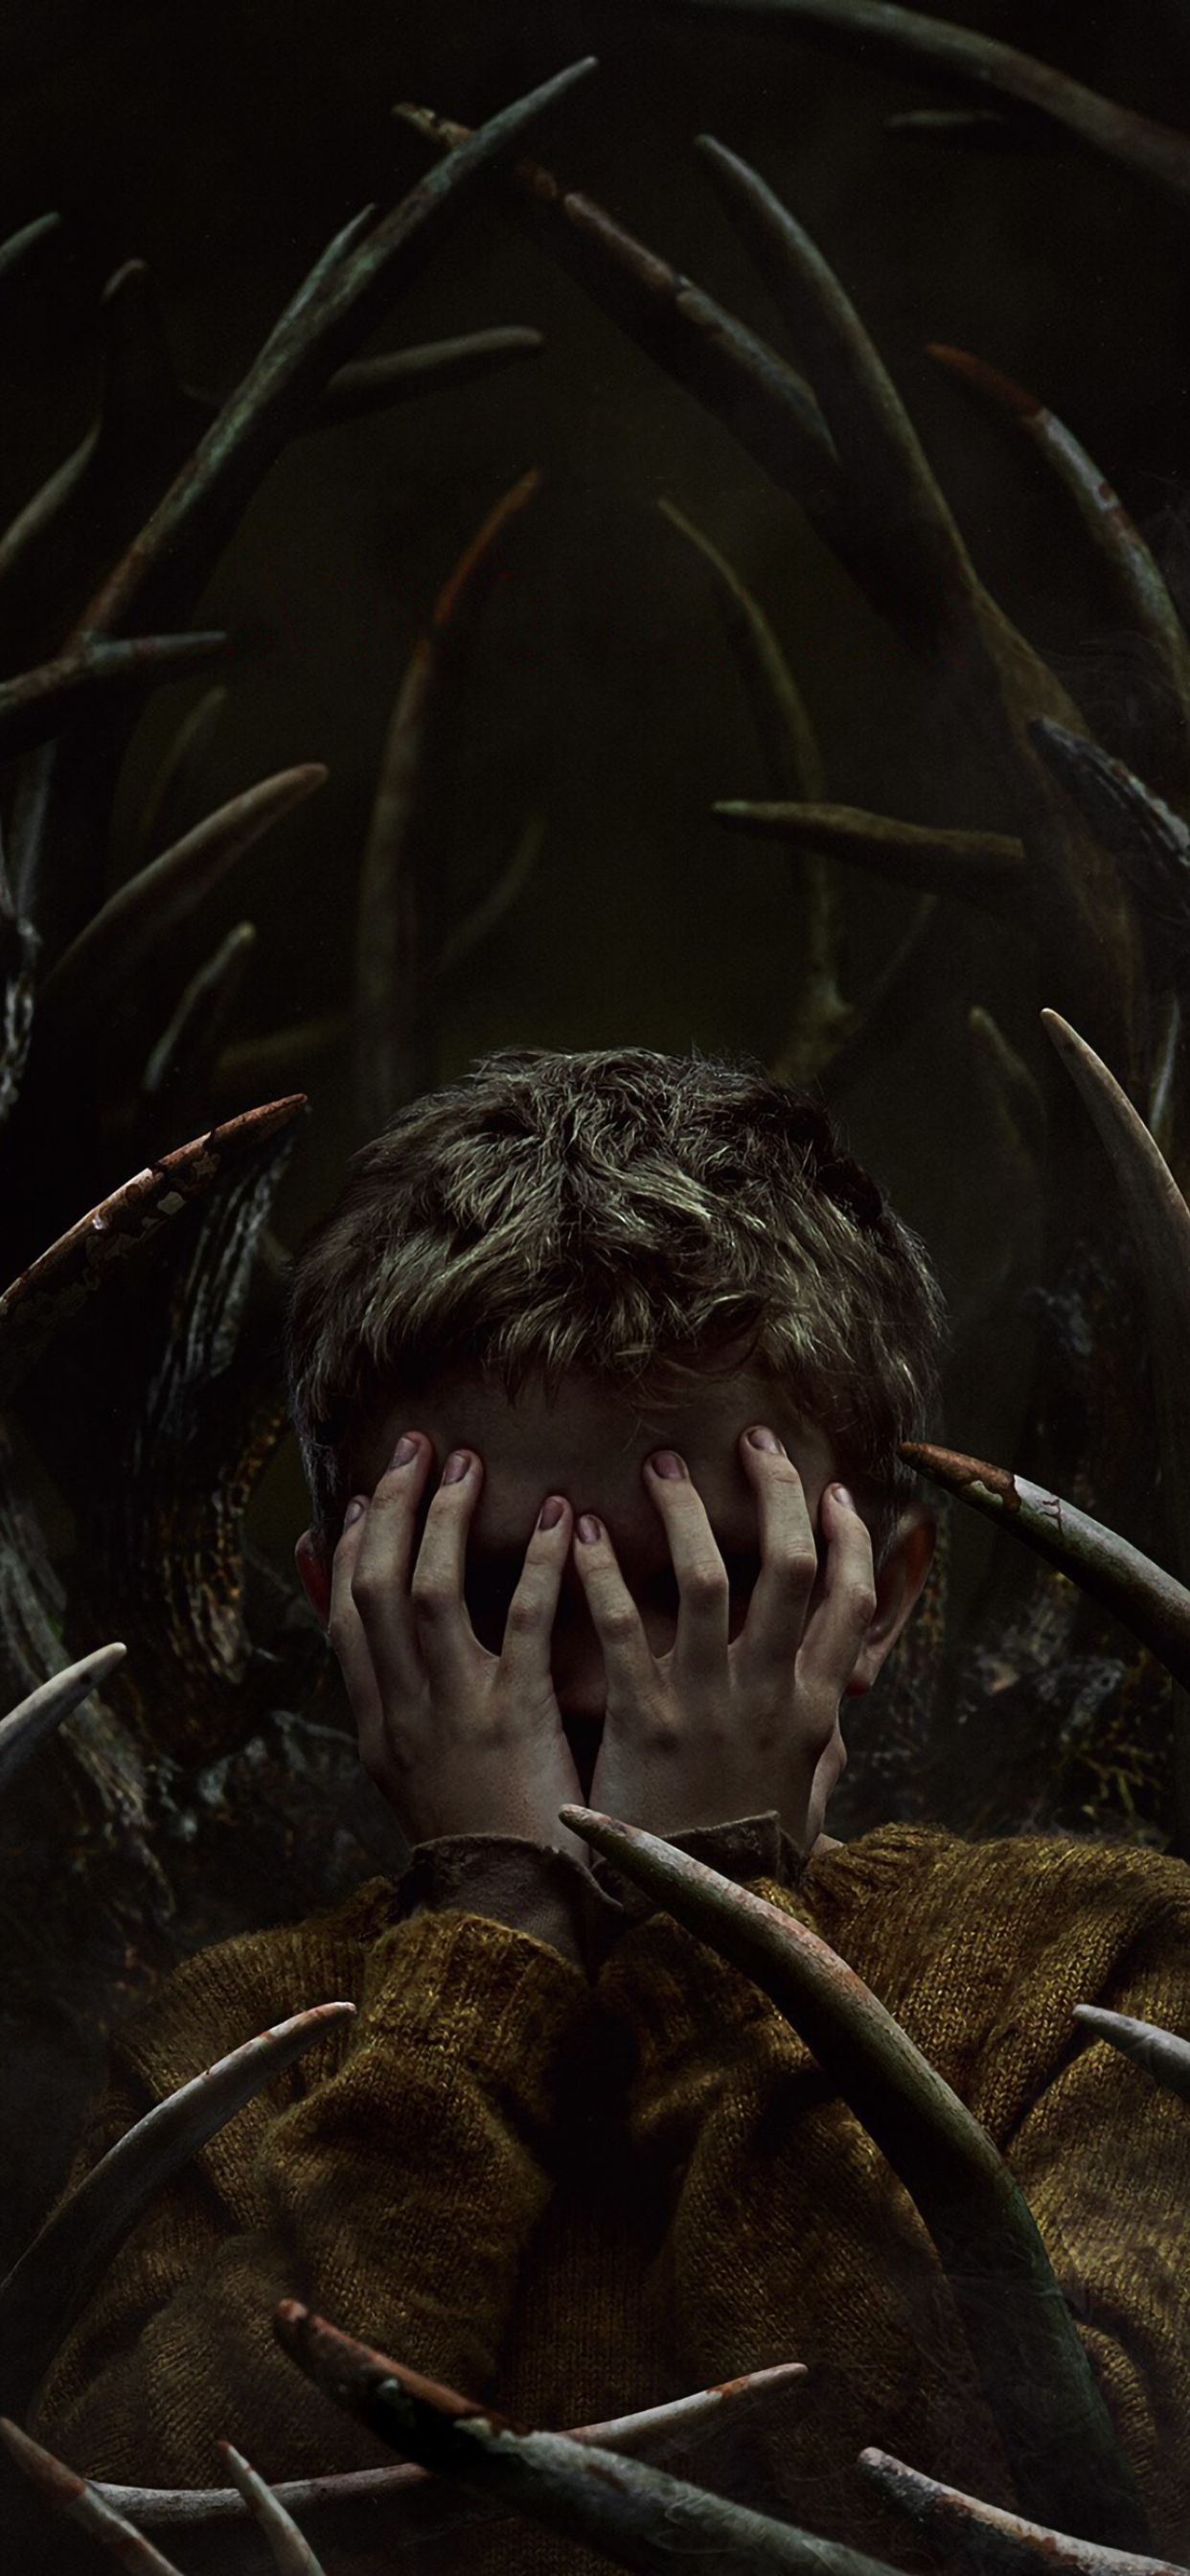 Antlers Movie Poster Wallpaper in 1242x2688 Resolution